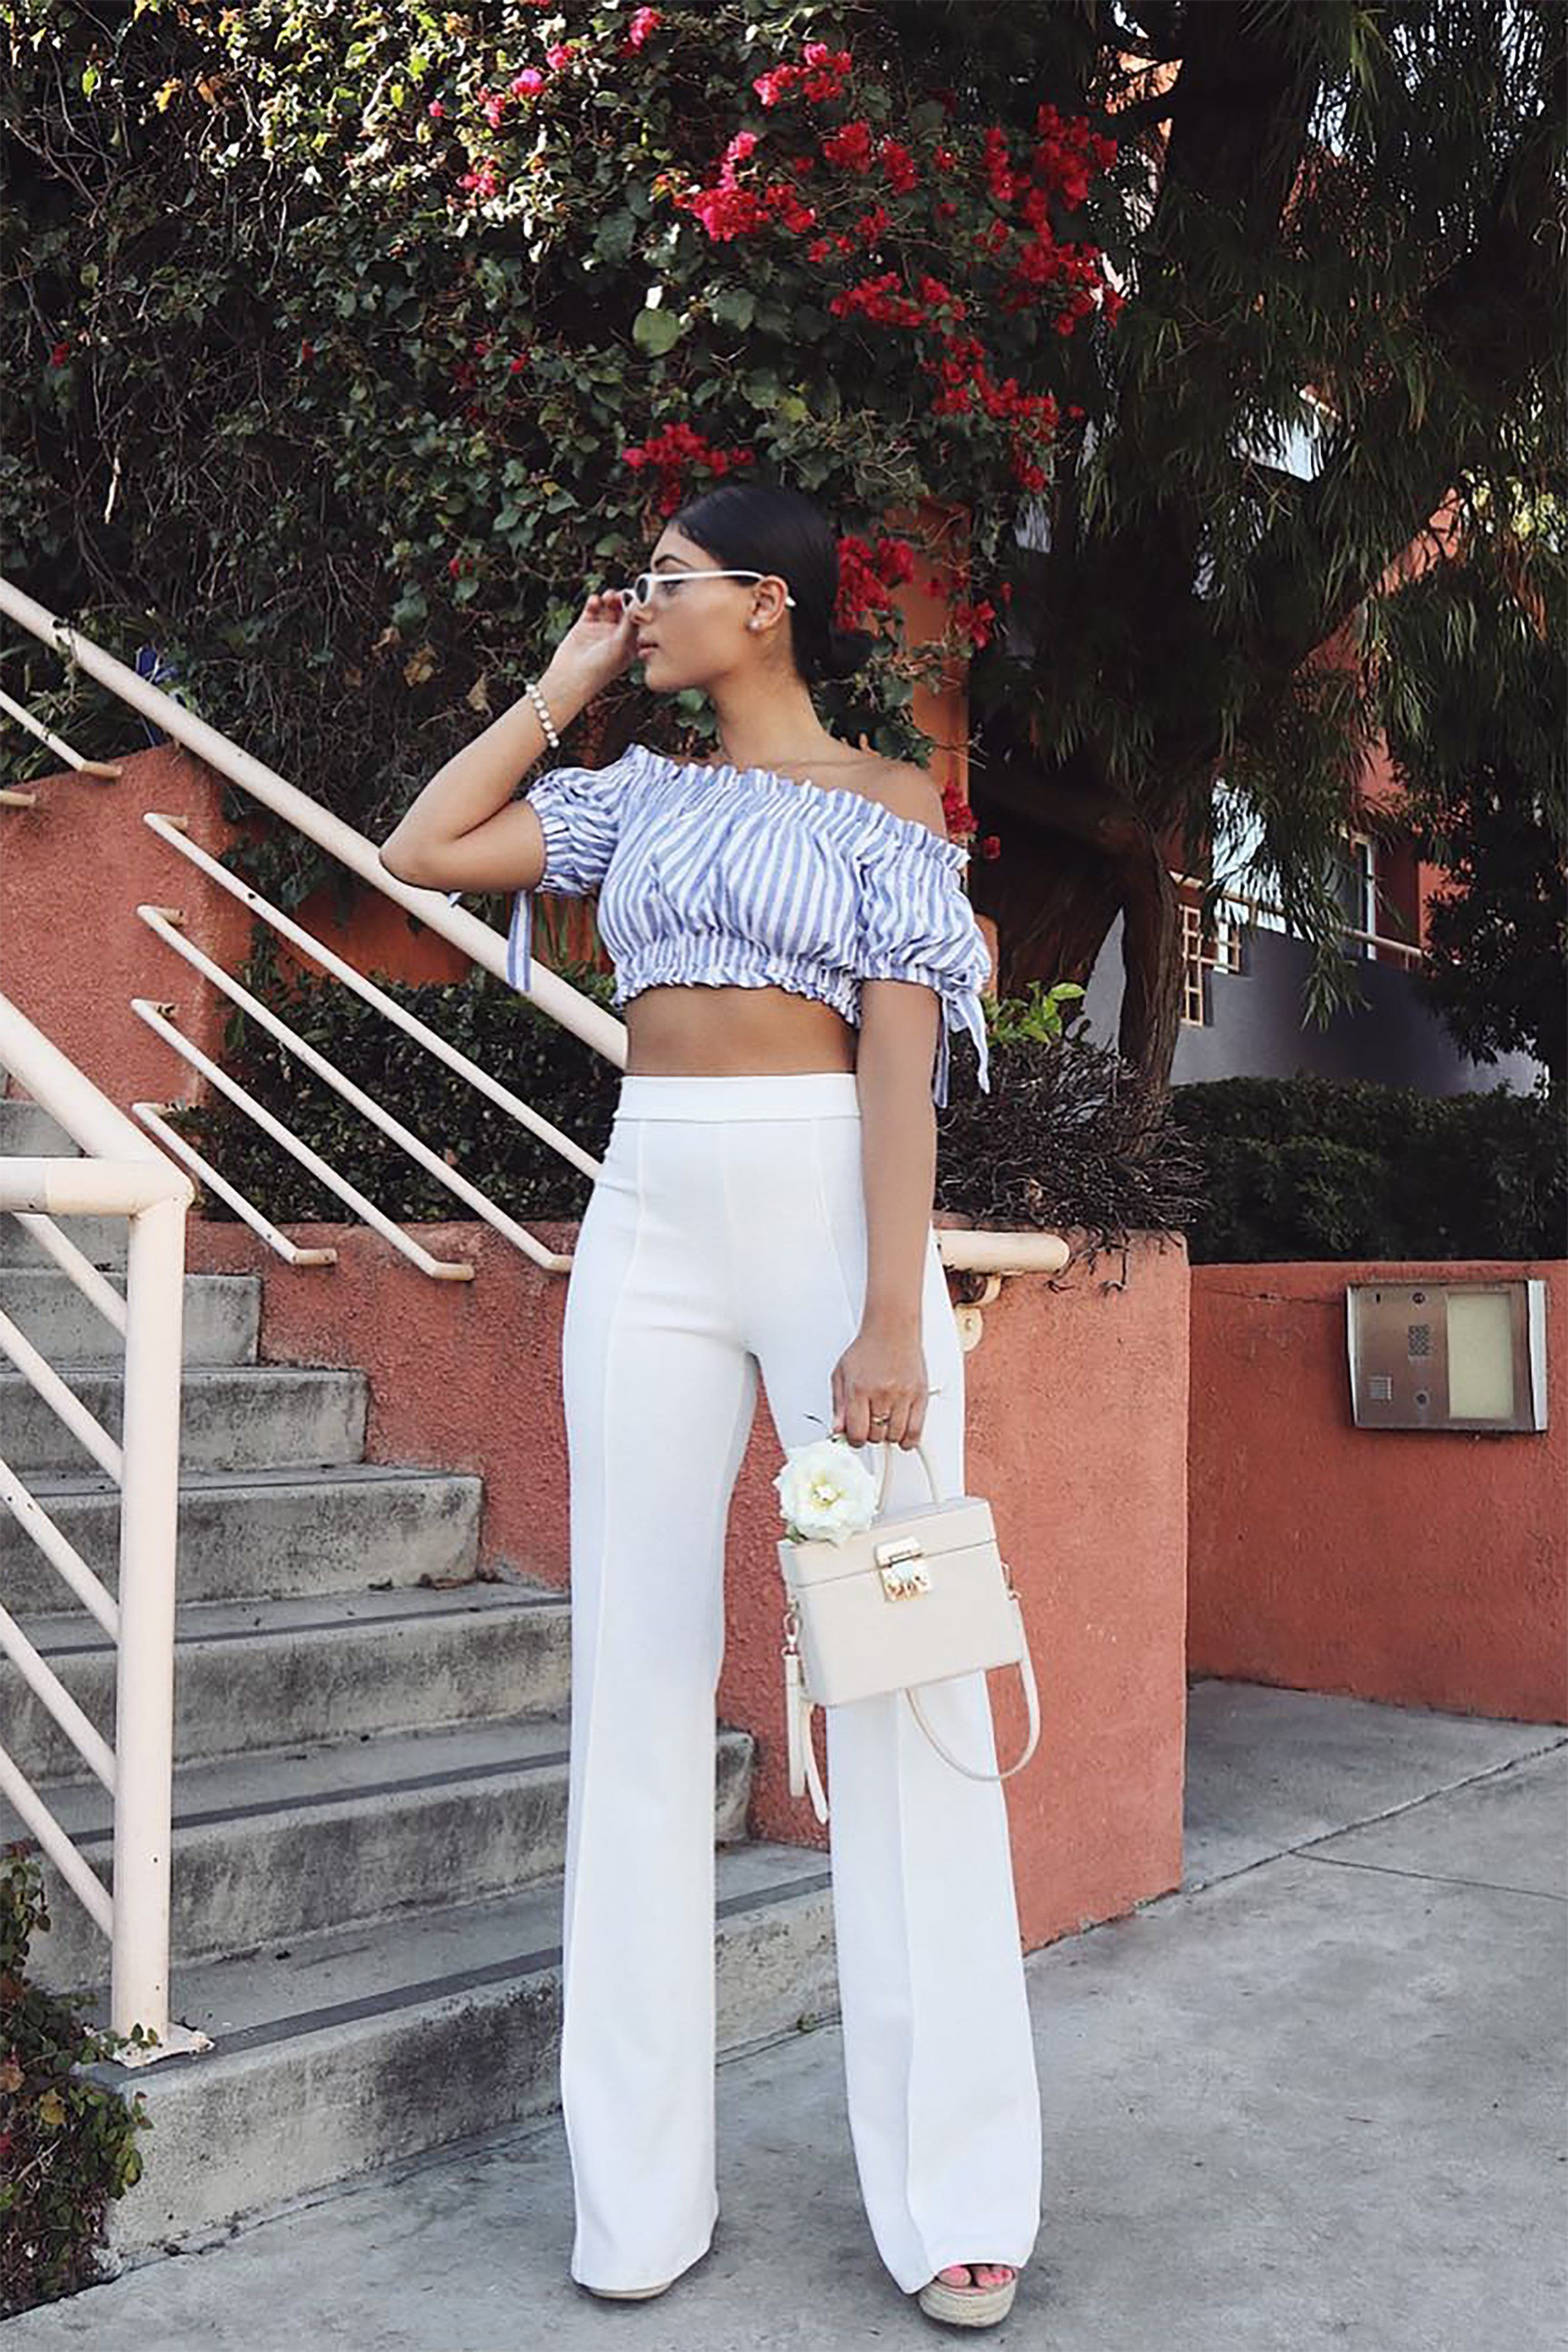 Victoria High Waisted Dress Pants White In 2020 High Waisted Dress Pants Cute White Dress High Waisted Pants Outfit [ 3936 x 2624 Pixel ]